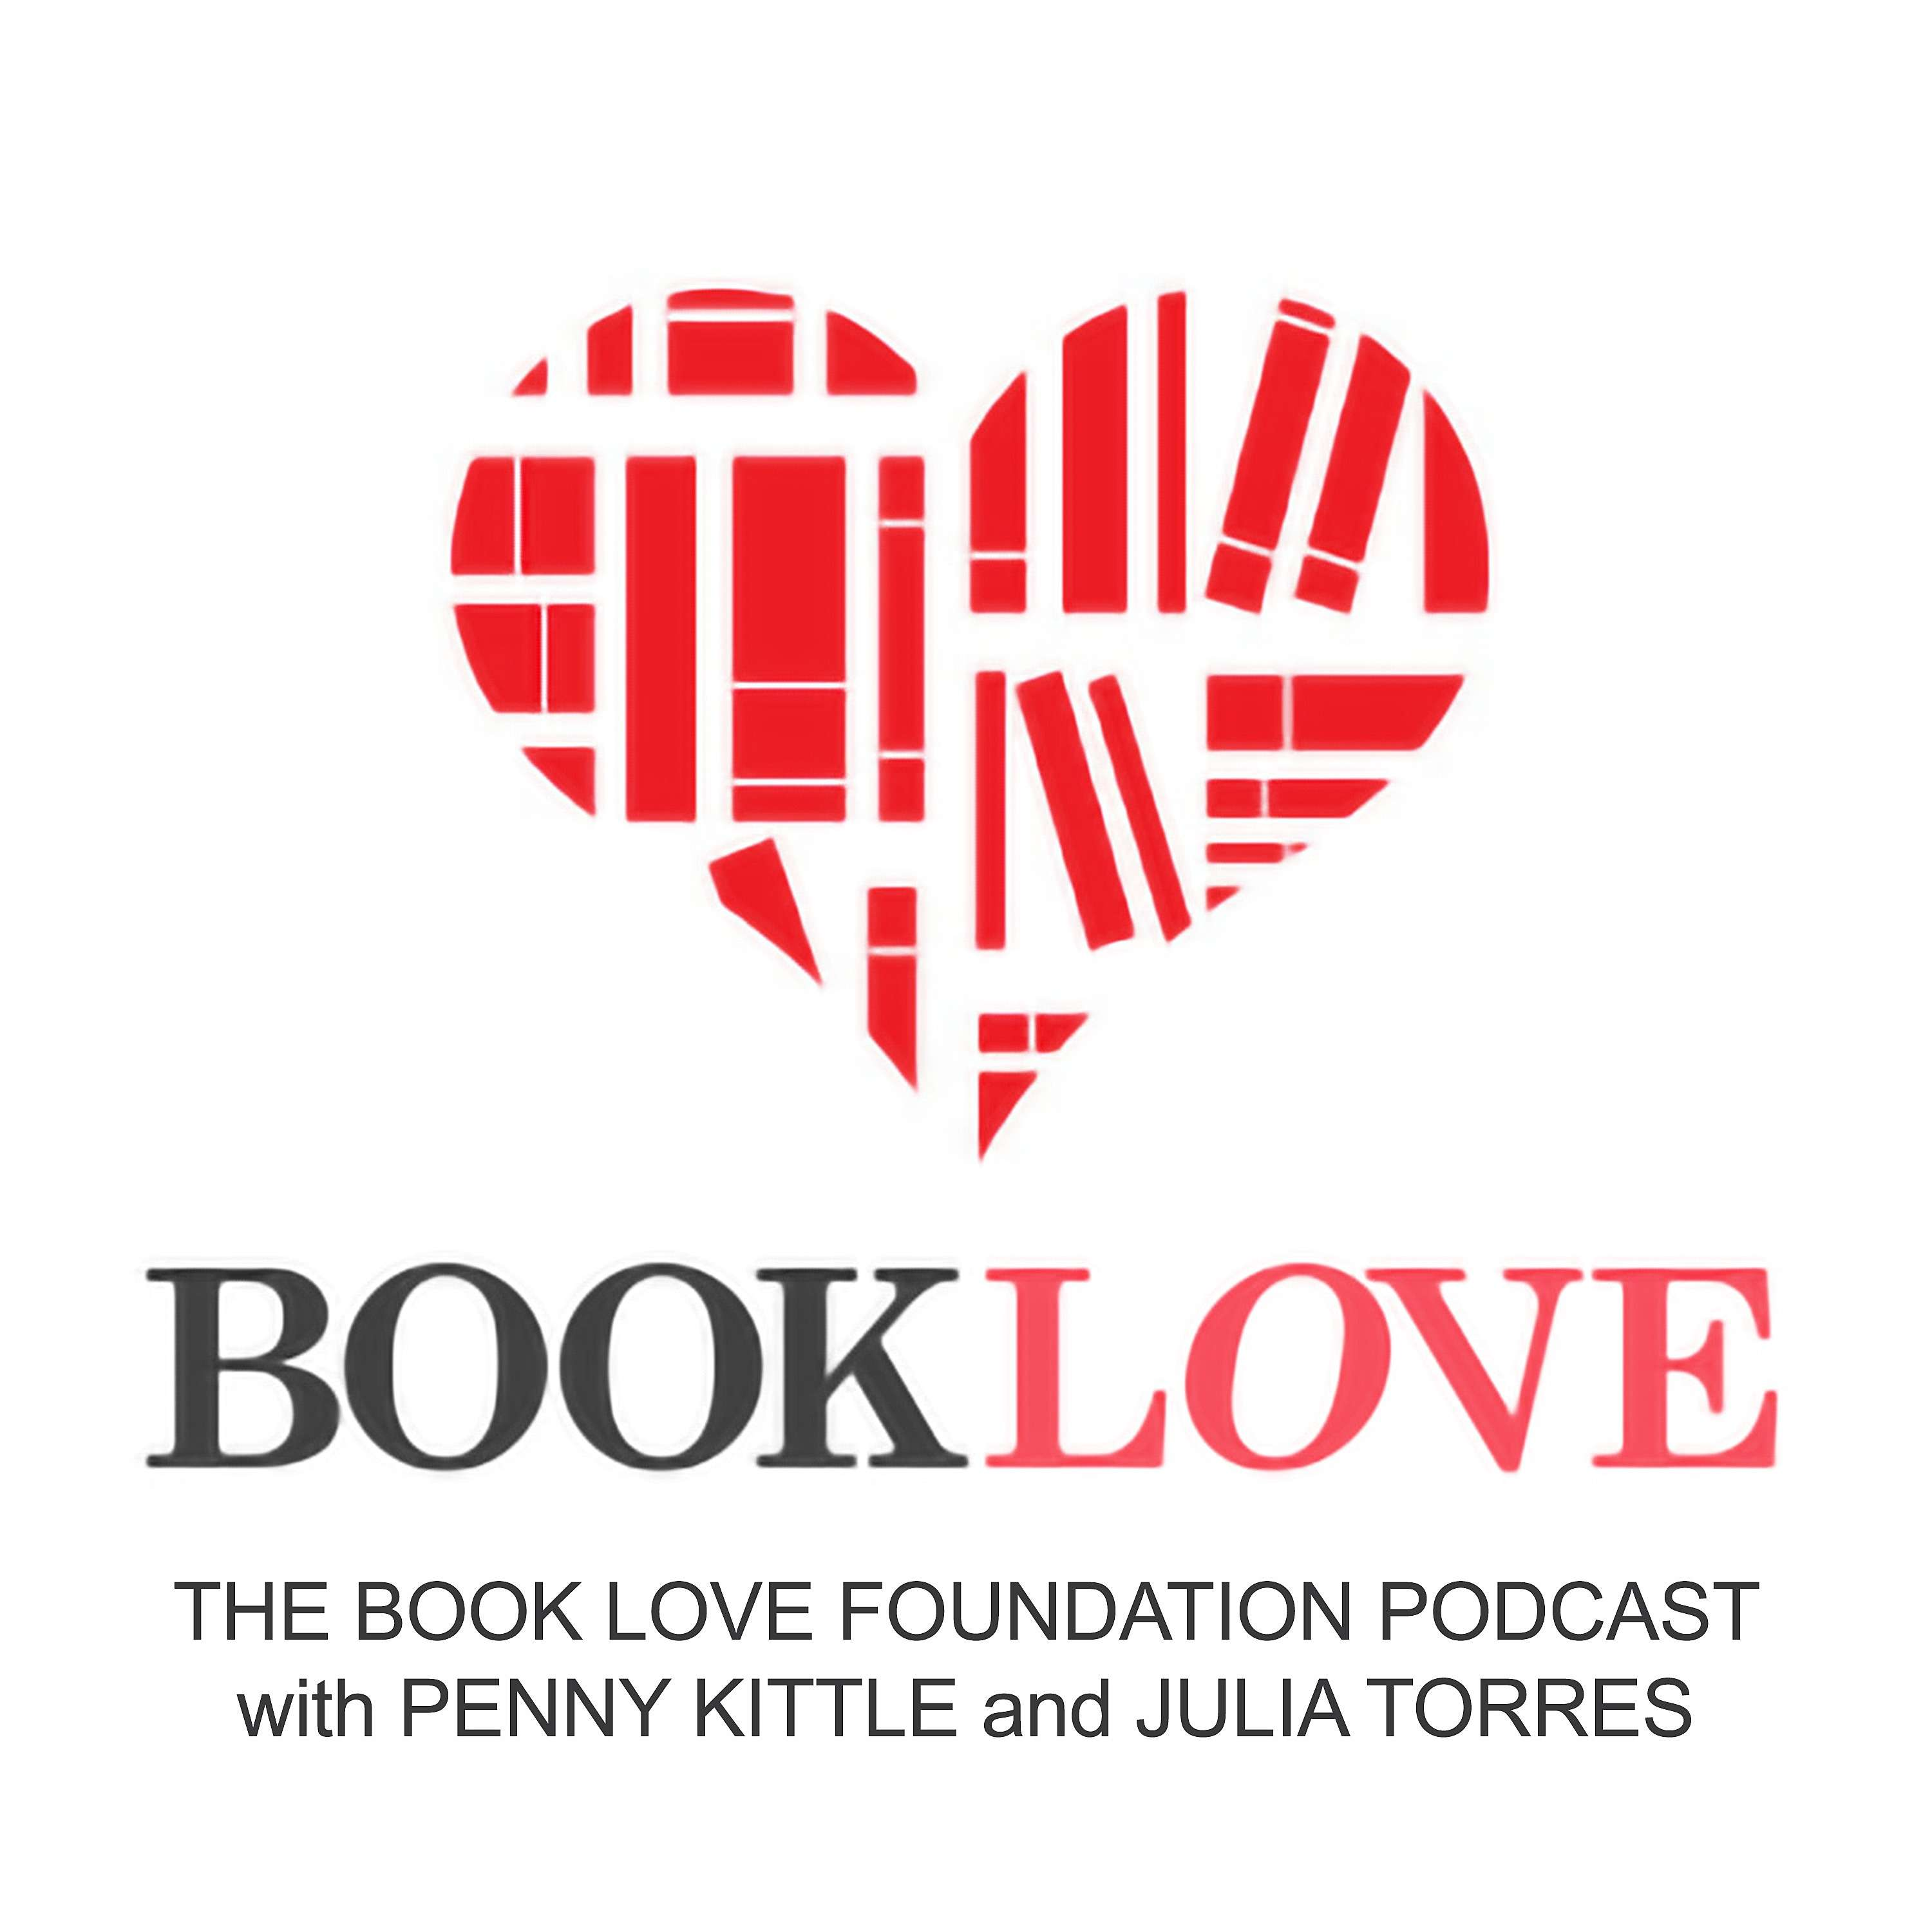 How Teachers Can Be Leaders. Episode 6 of the Book Love Foundation Podcast